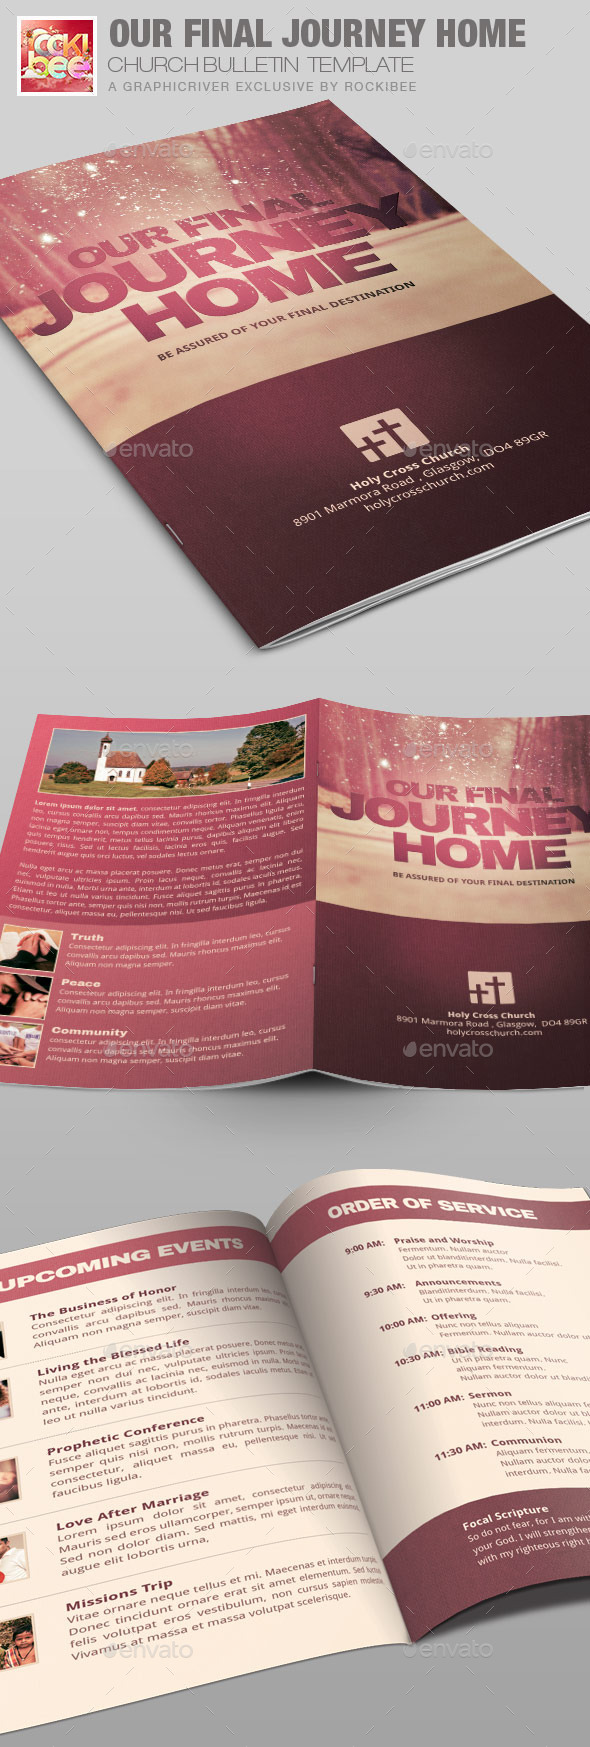 Our Final Journey Church Bulletin Template - Informational Brochures